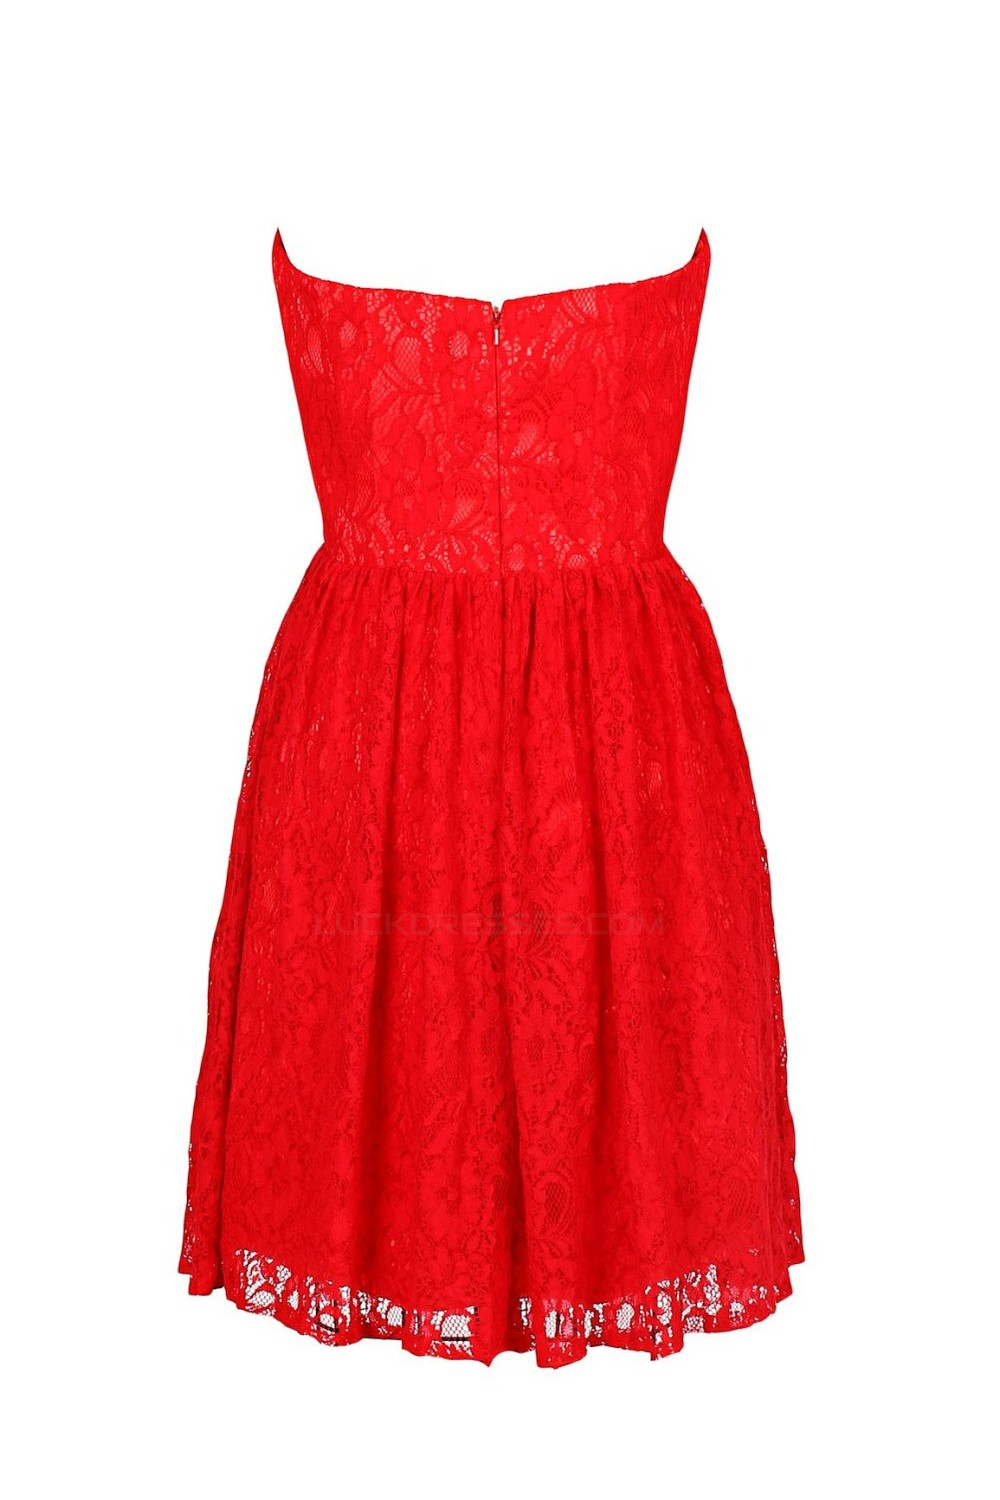 aline sweetheart short red lace bridesmaid dresses